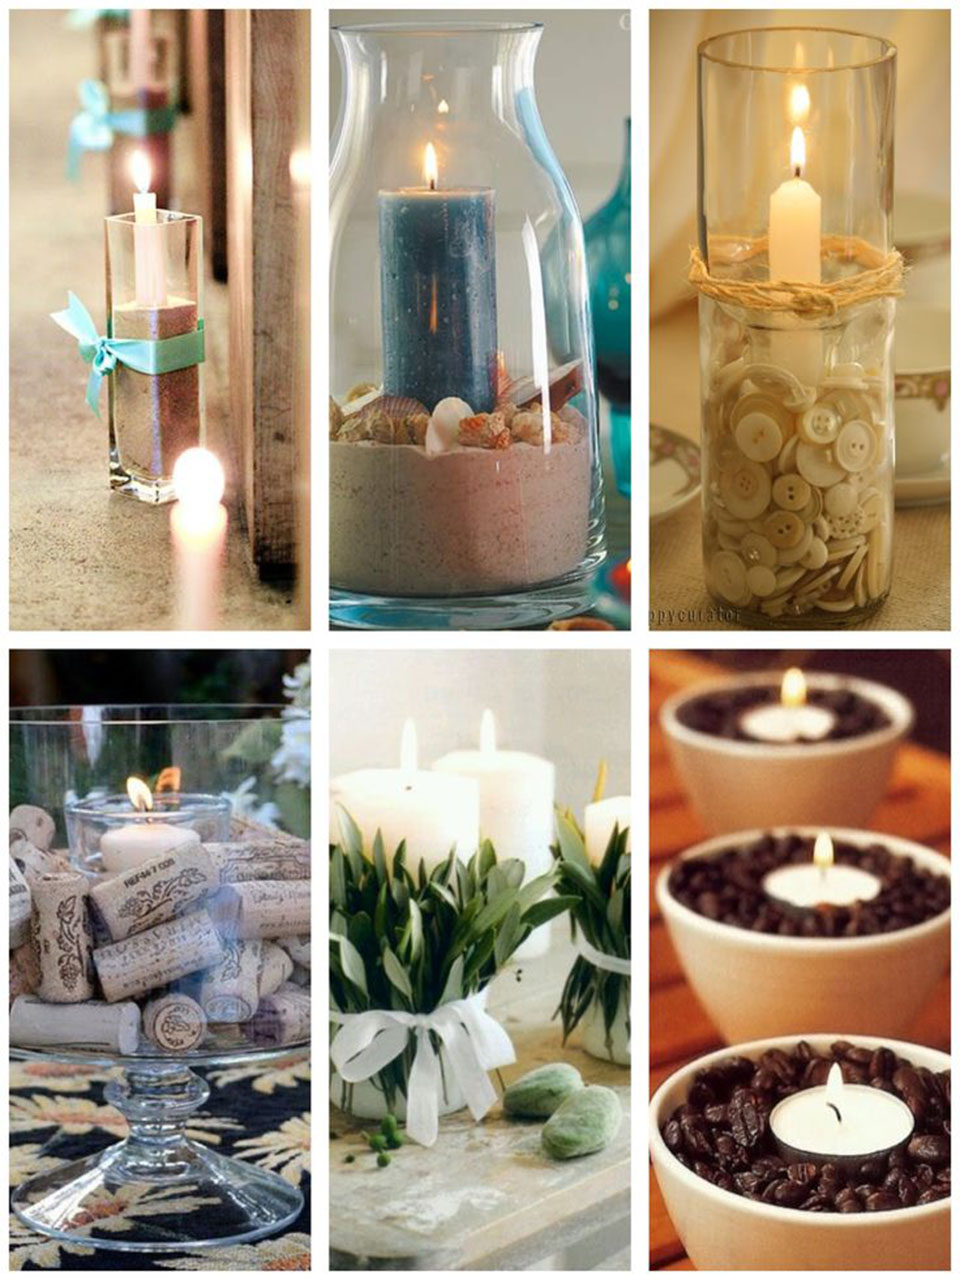 Las ideas m s incre bles para decorar con velas - Decorar con velas ...